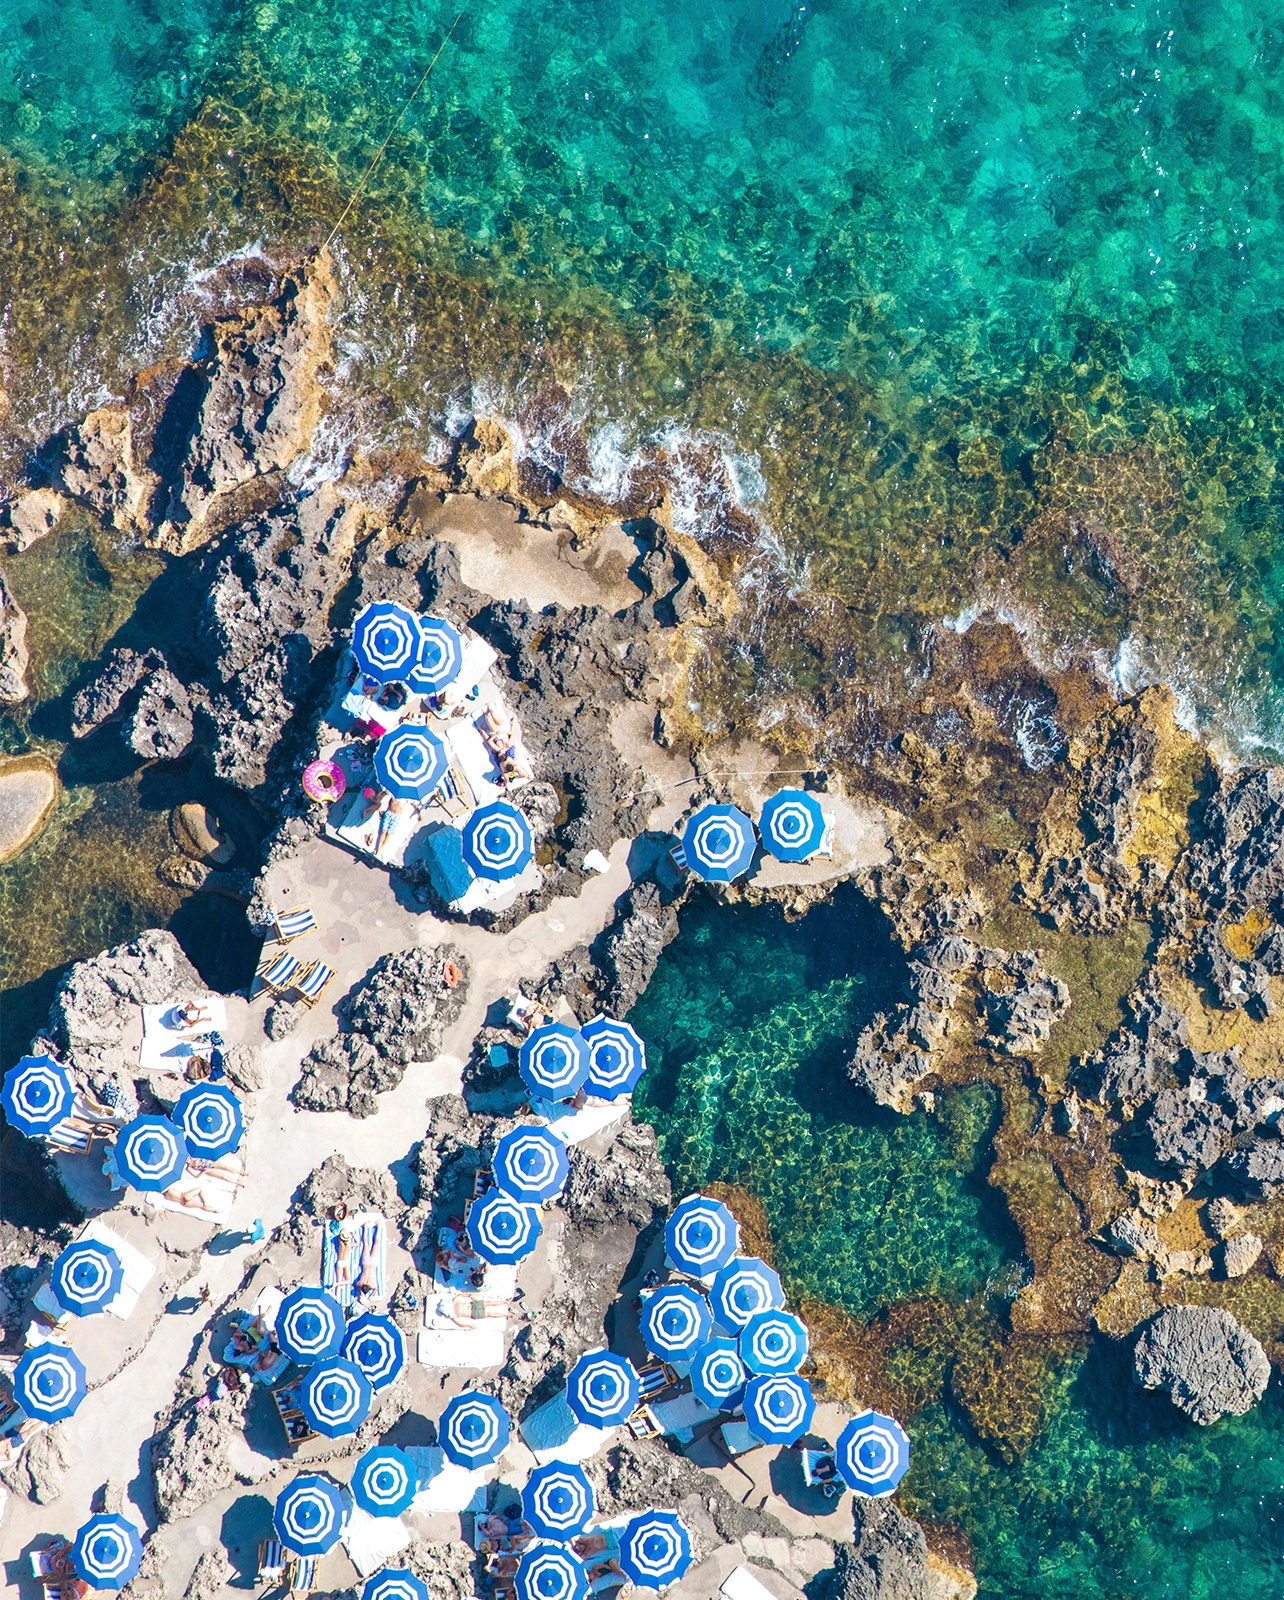 Arial photo of the Mediterranean coast with scattered blue umbrellas